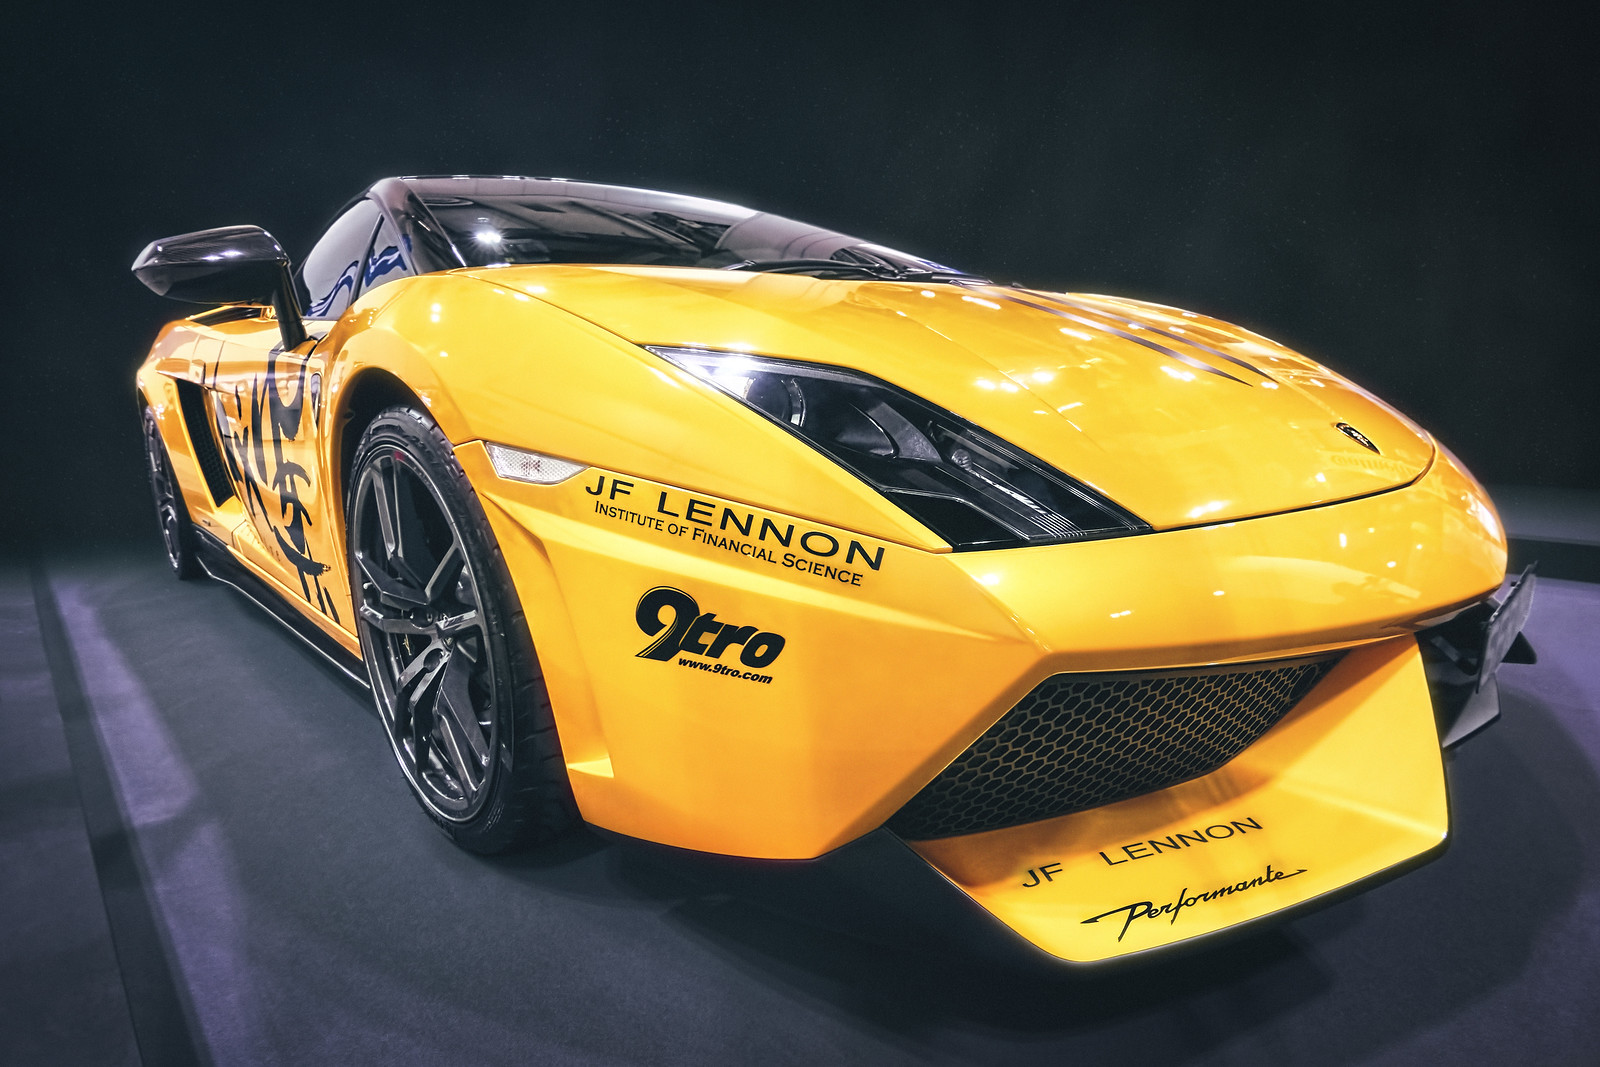 The Yellow Lamborghini Gallardo Dlifejourney